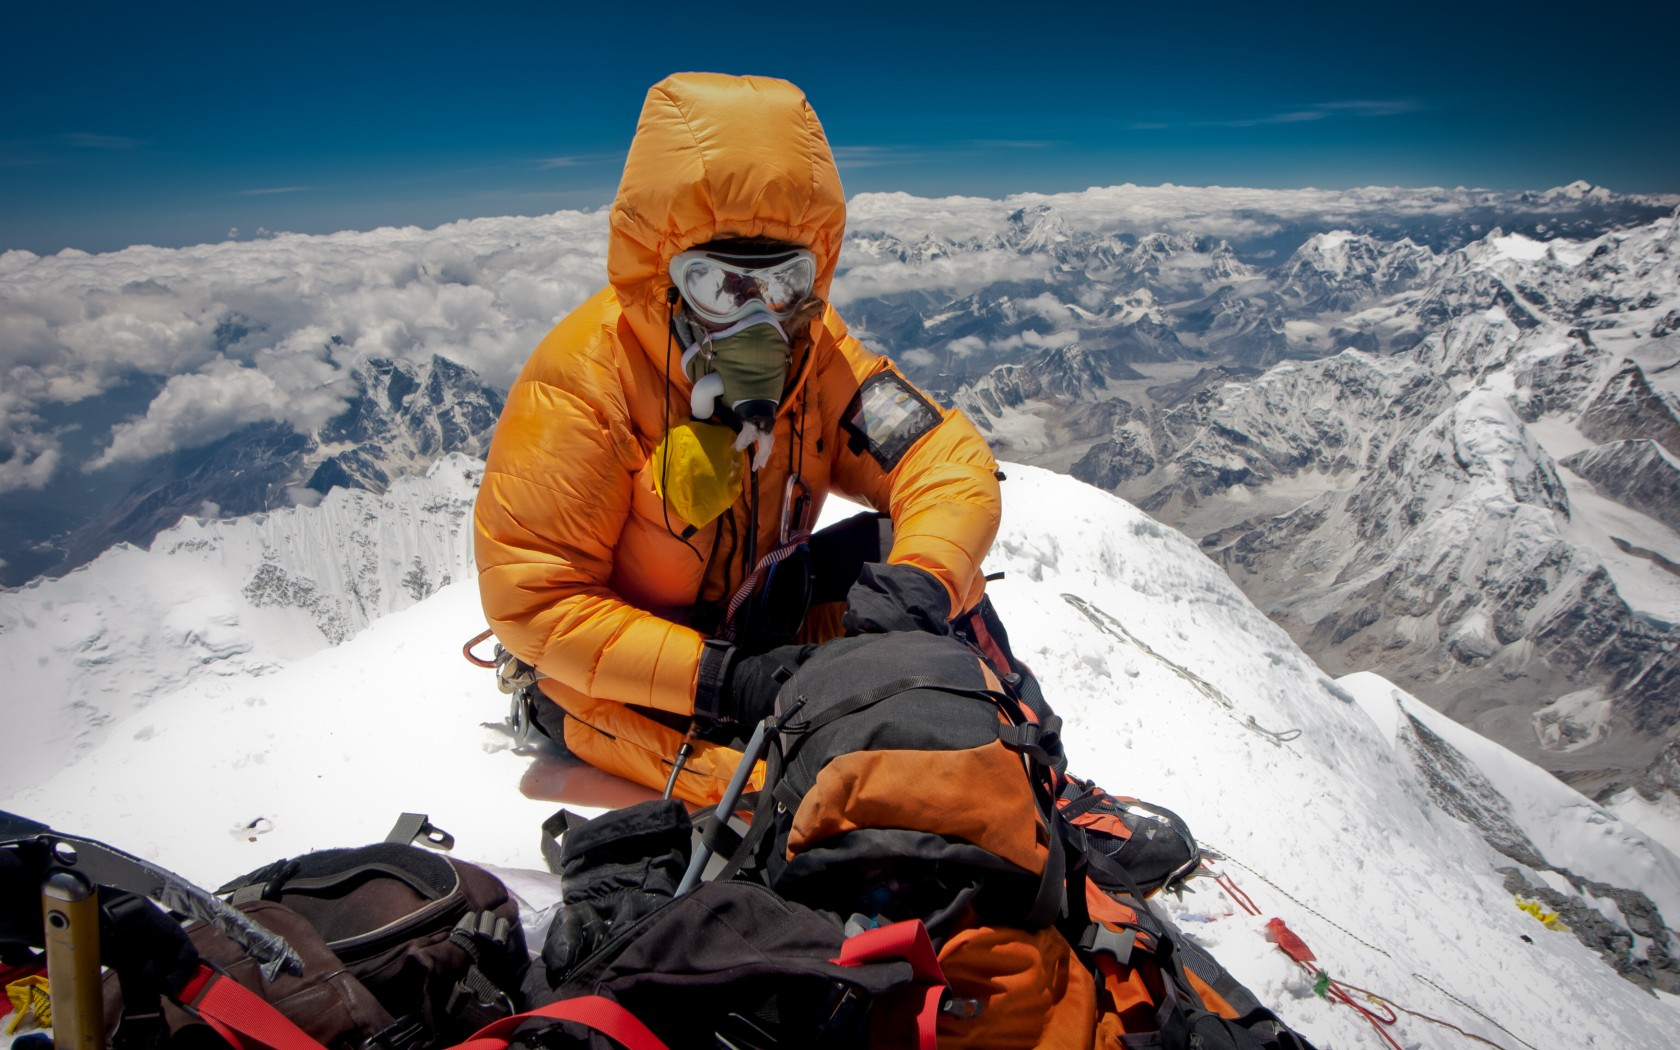 Scale the highest peak in the world – Mount Everest